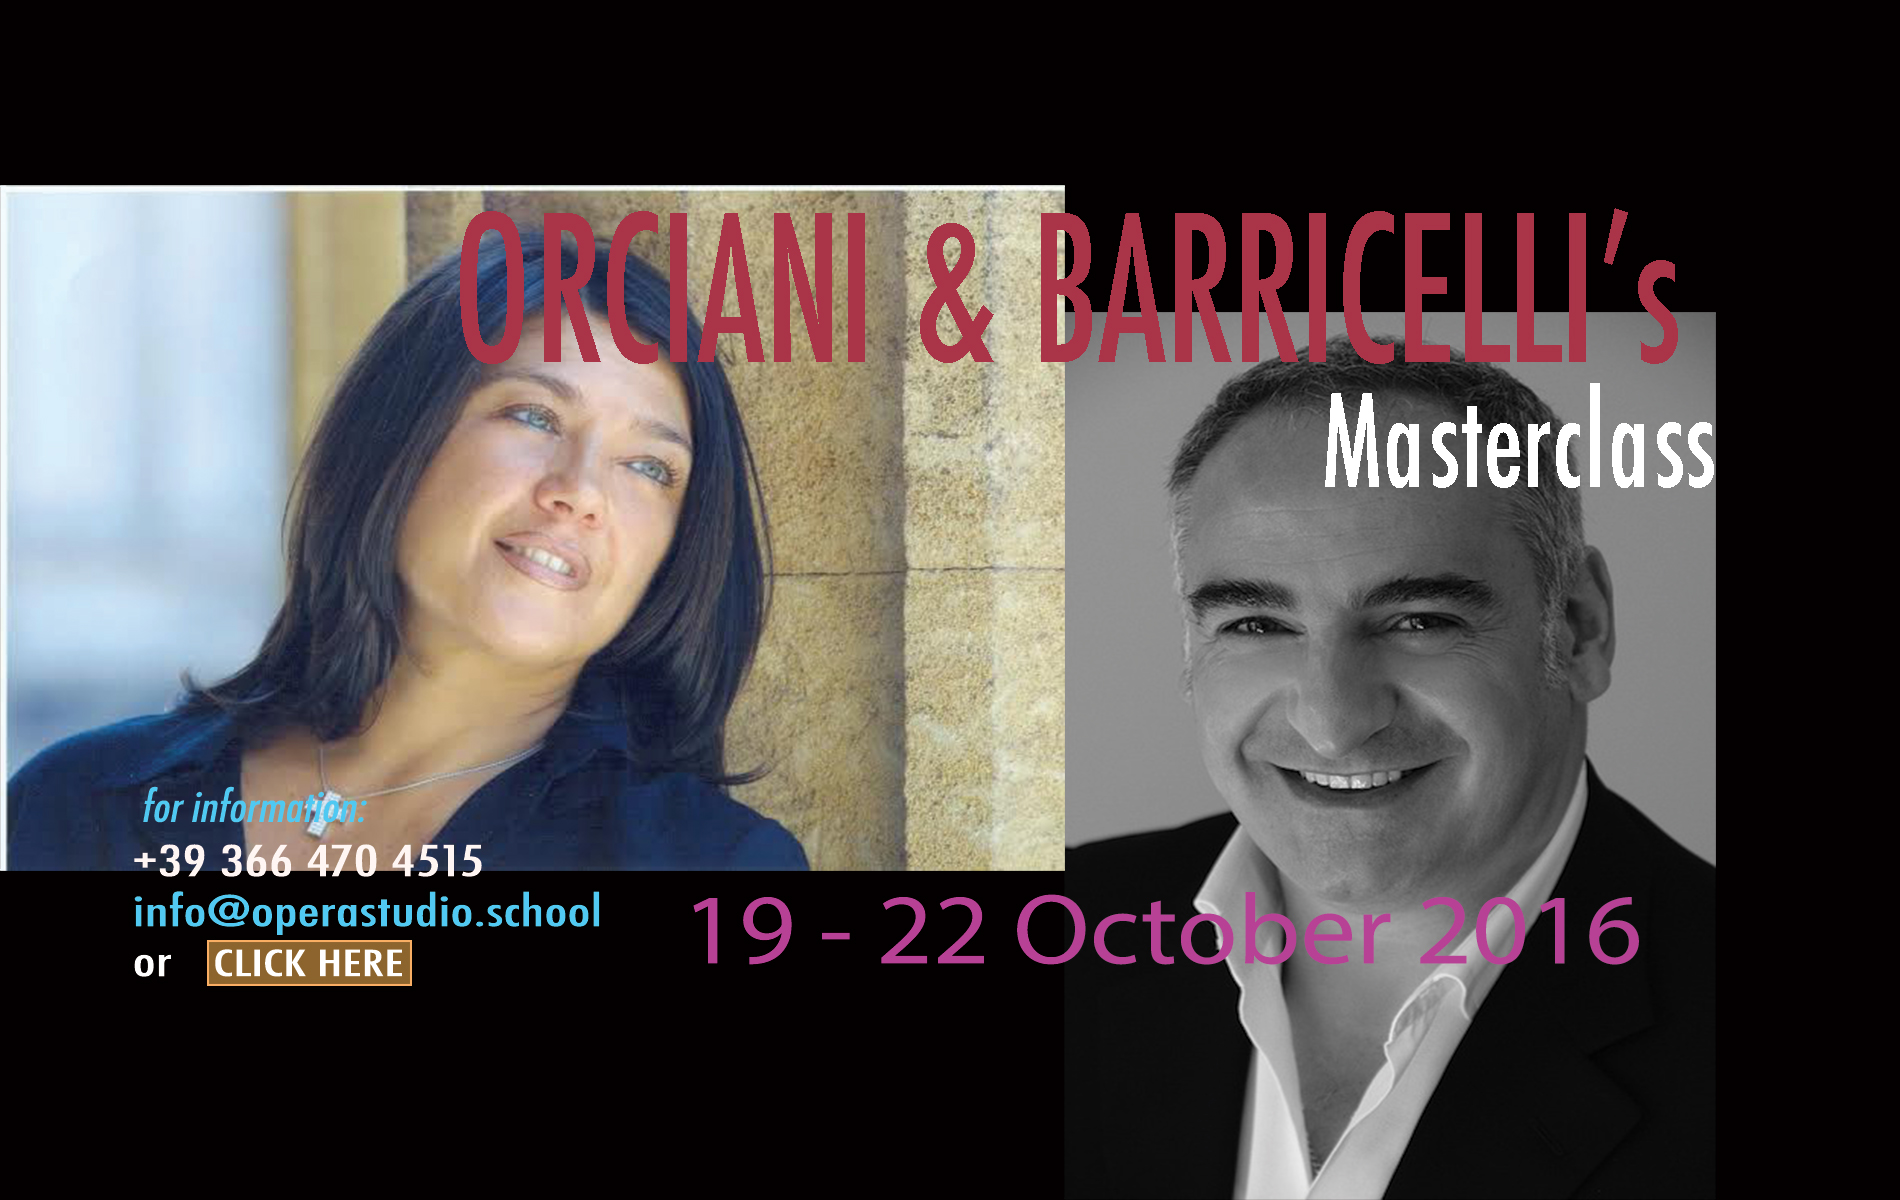 orciani-barricelli-october-2016